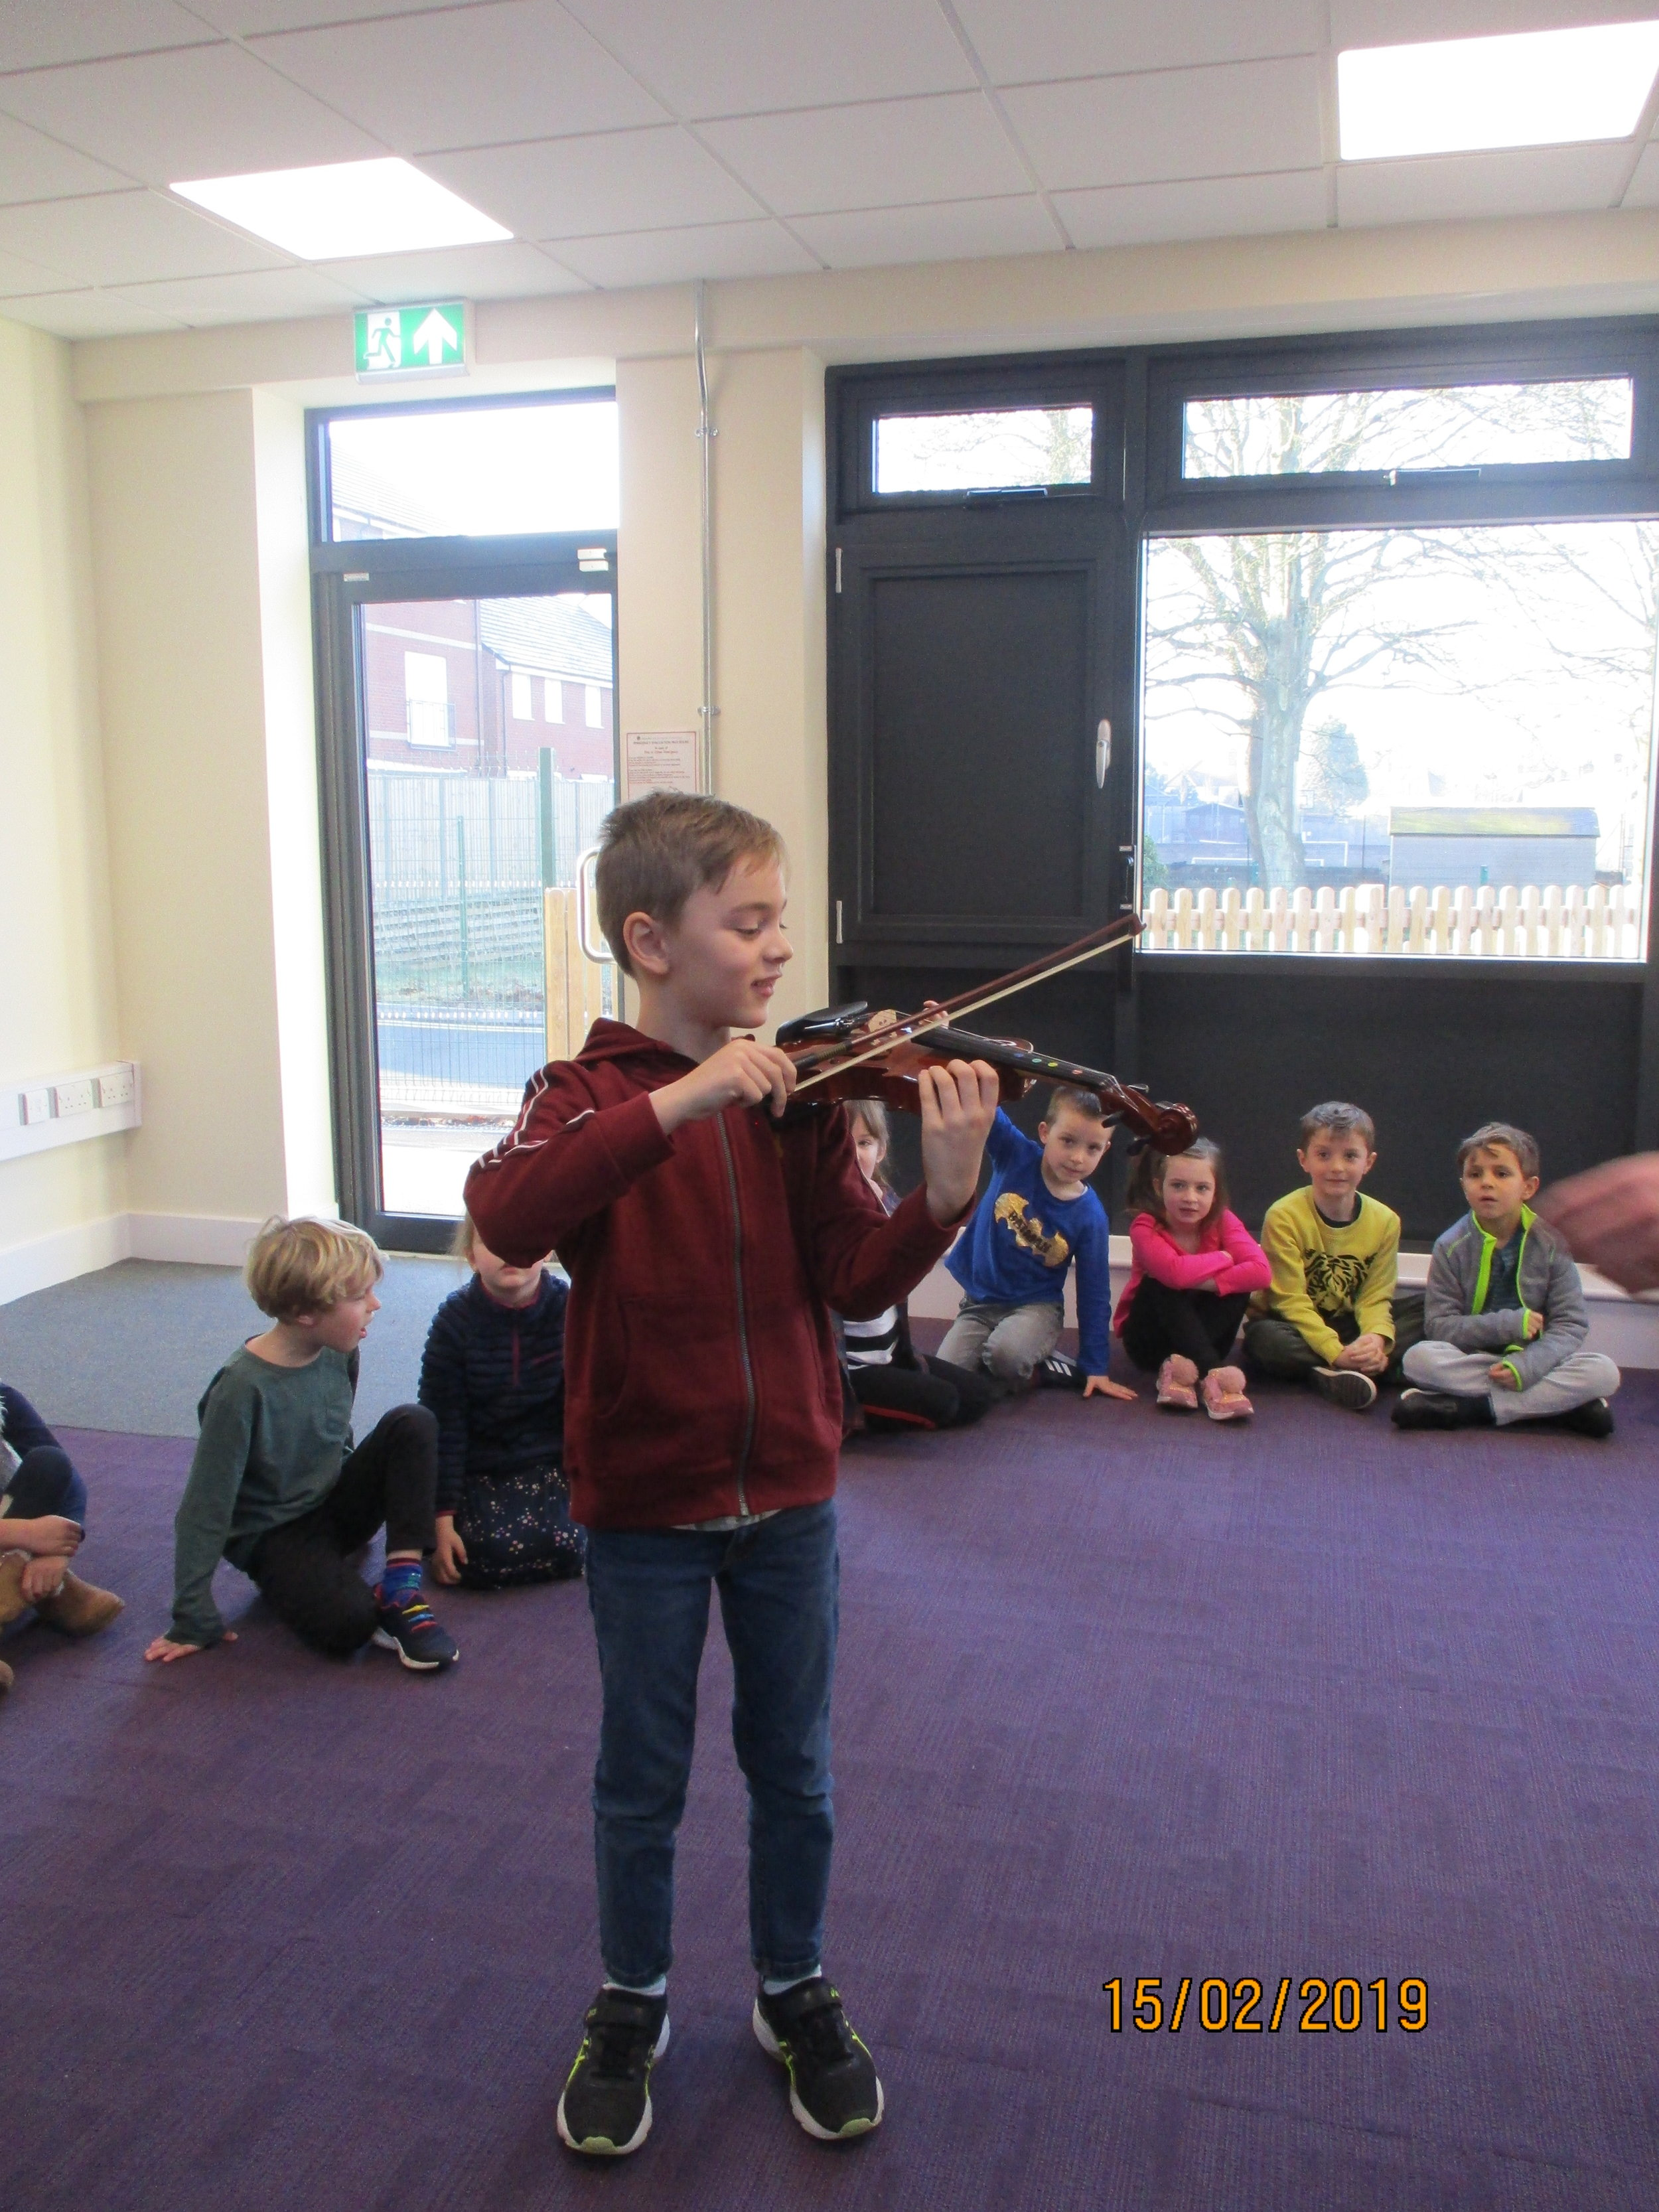 We are all musicians! We have been exploring how to play the violin, trumpet, recorder, claves, drums and cymbals!